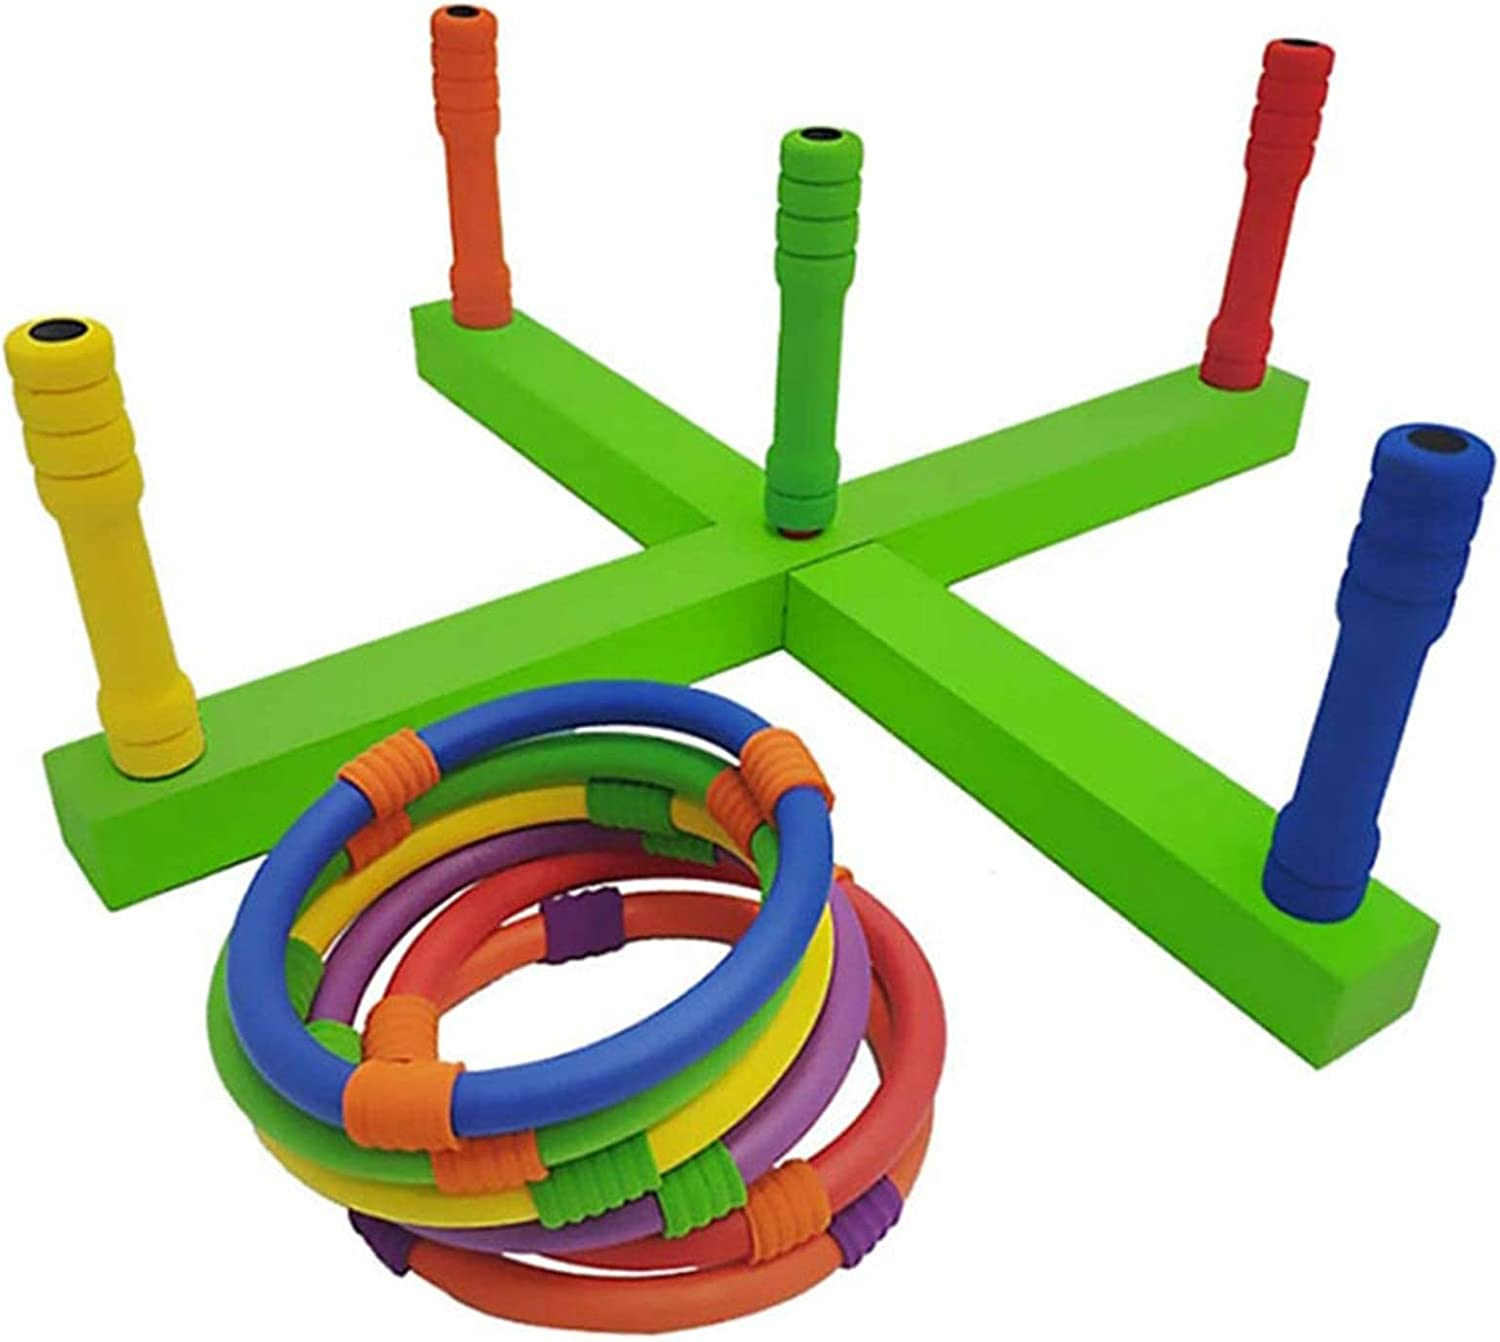 GCCBQM Soft Our shop OFFers the best service Foam Throw Ring Wooden Handmade Game All items free shipping Outdoor Indoor